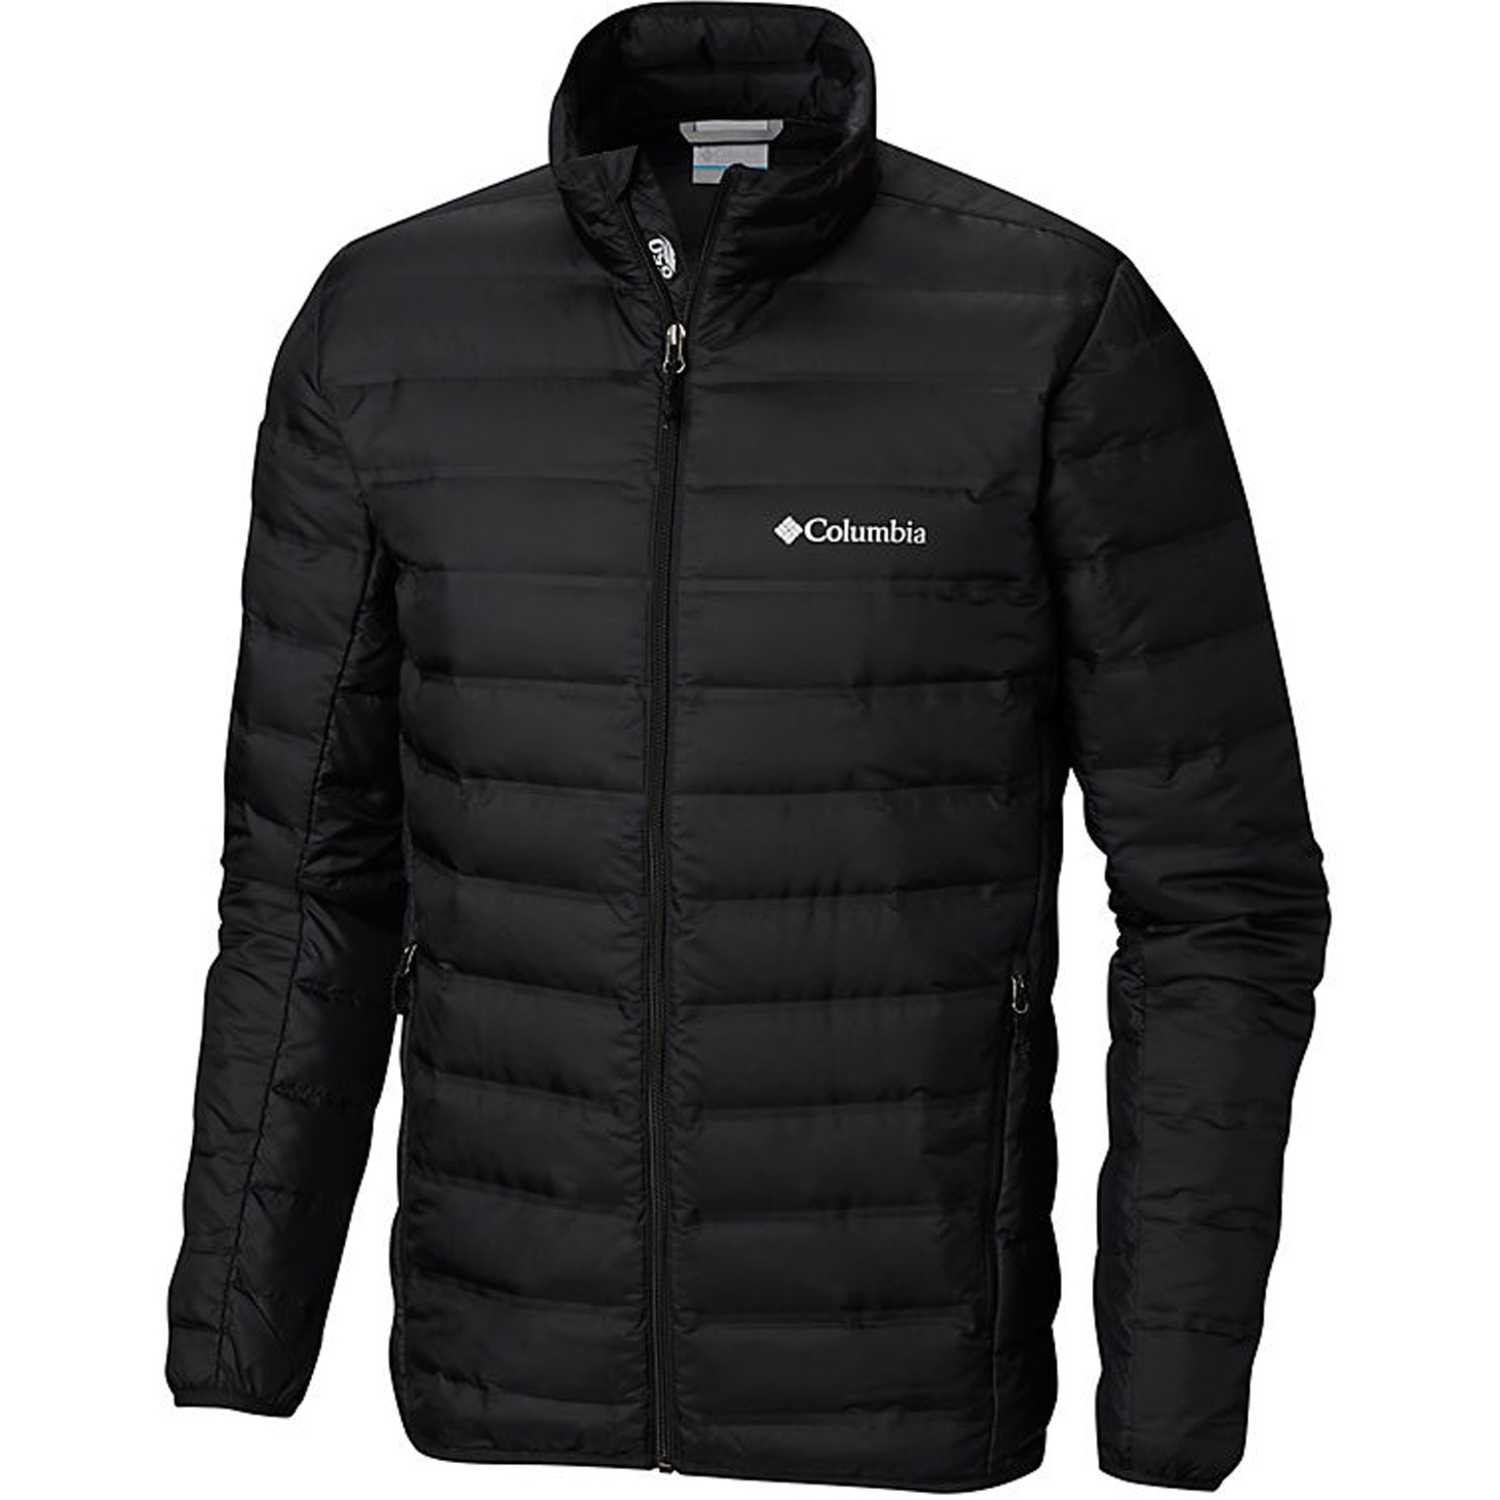 Columbia lake 22 down jacket Negro Trinchera y Lluvia